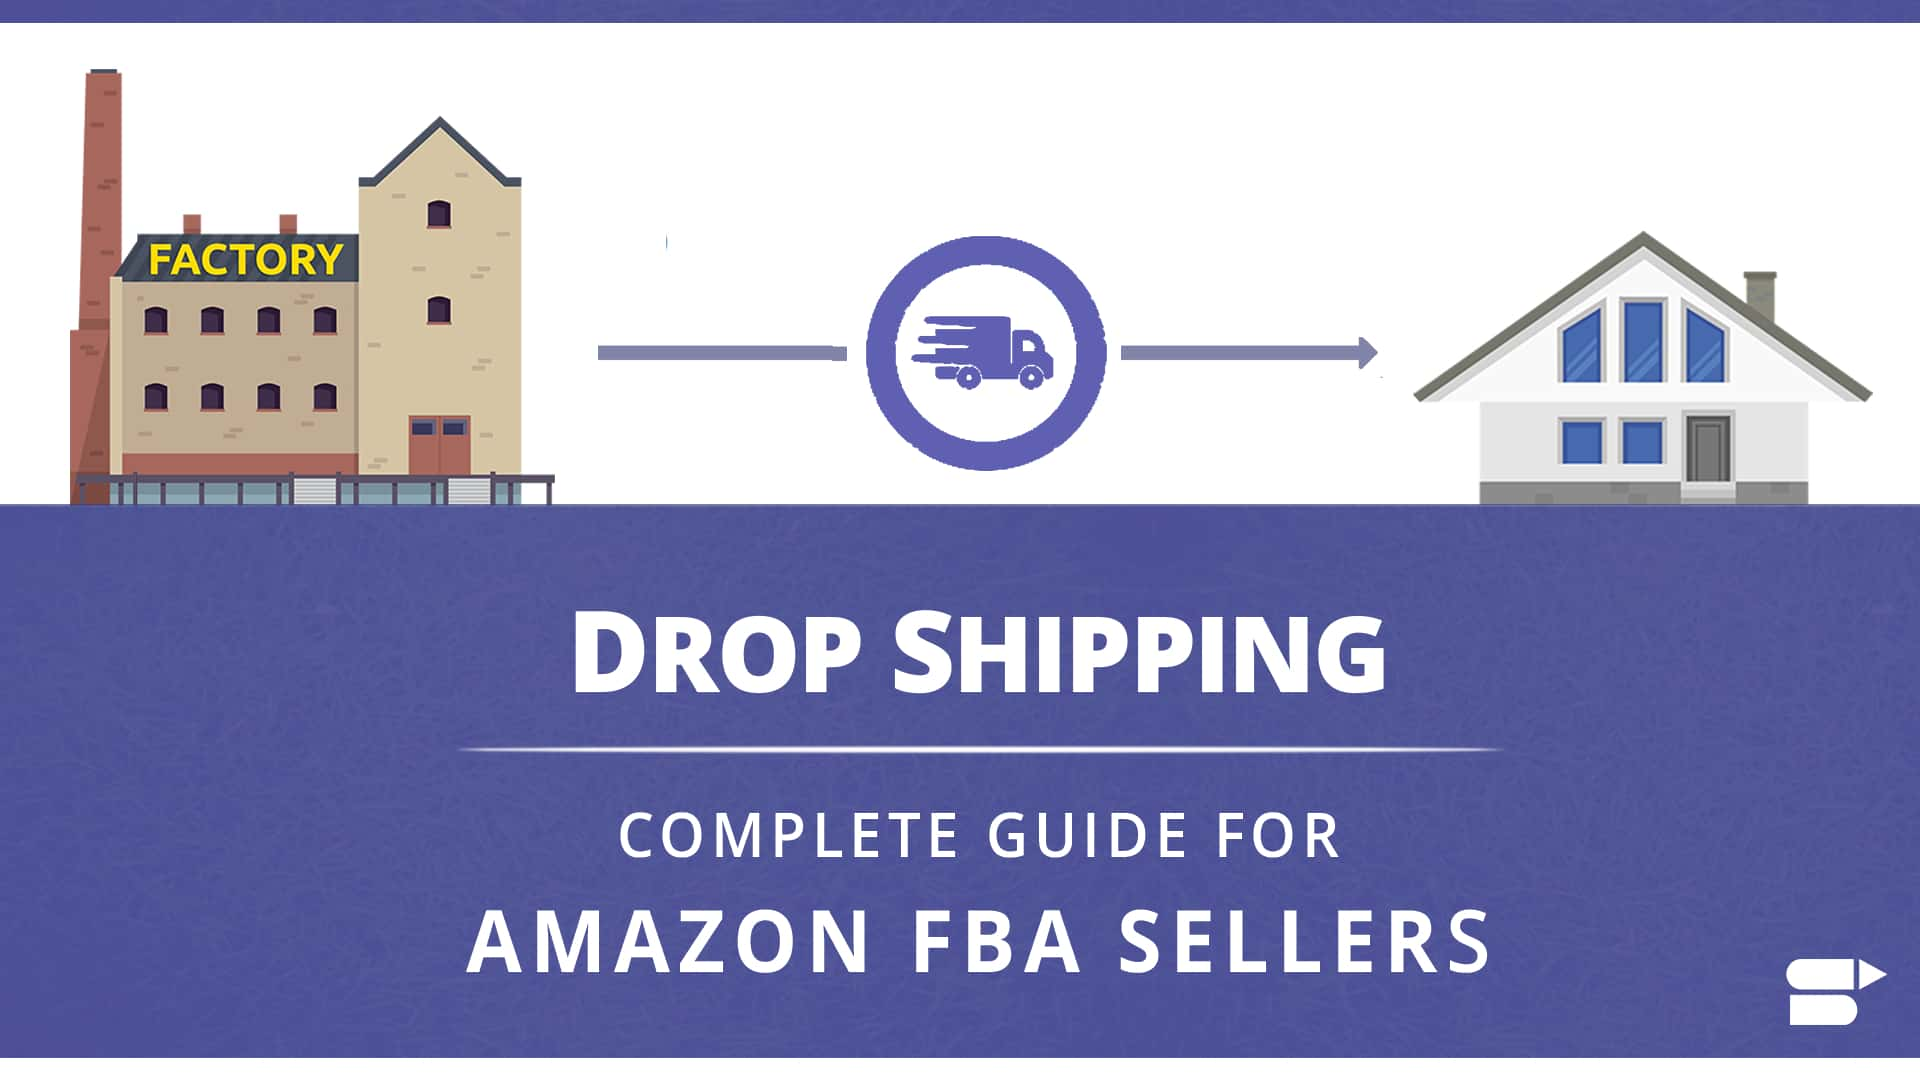 Amazon DropShipping: Policy Guide With Pro's & Con's